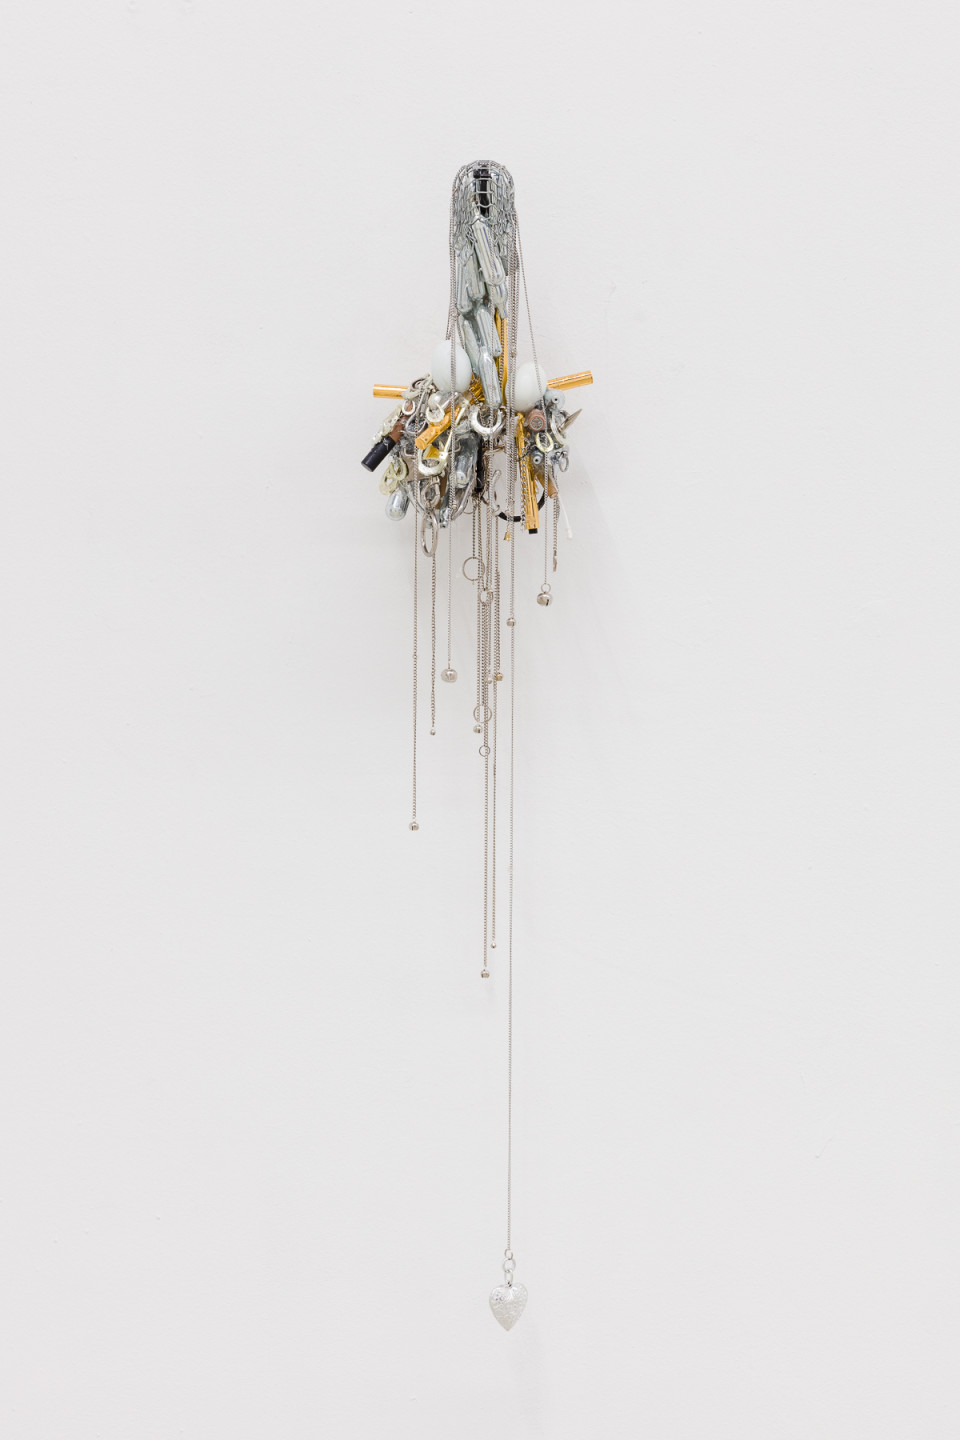 George Henry Longly Str8 Cock Worship , 2019 Nitrousoxide, metal chains, plastic, make up, anusol, bamboo ,eggs 117 x 26 x 17 cm 46 1/8 x 10 1/4 x 6 3/4 in